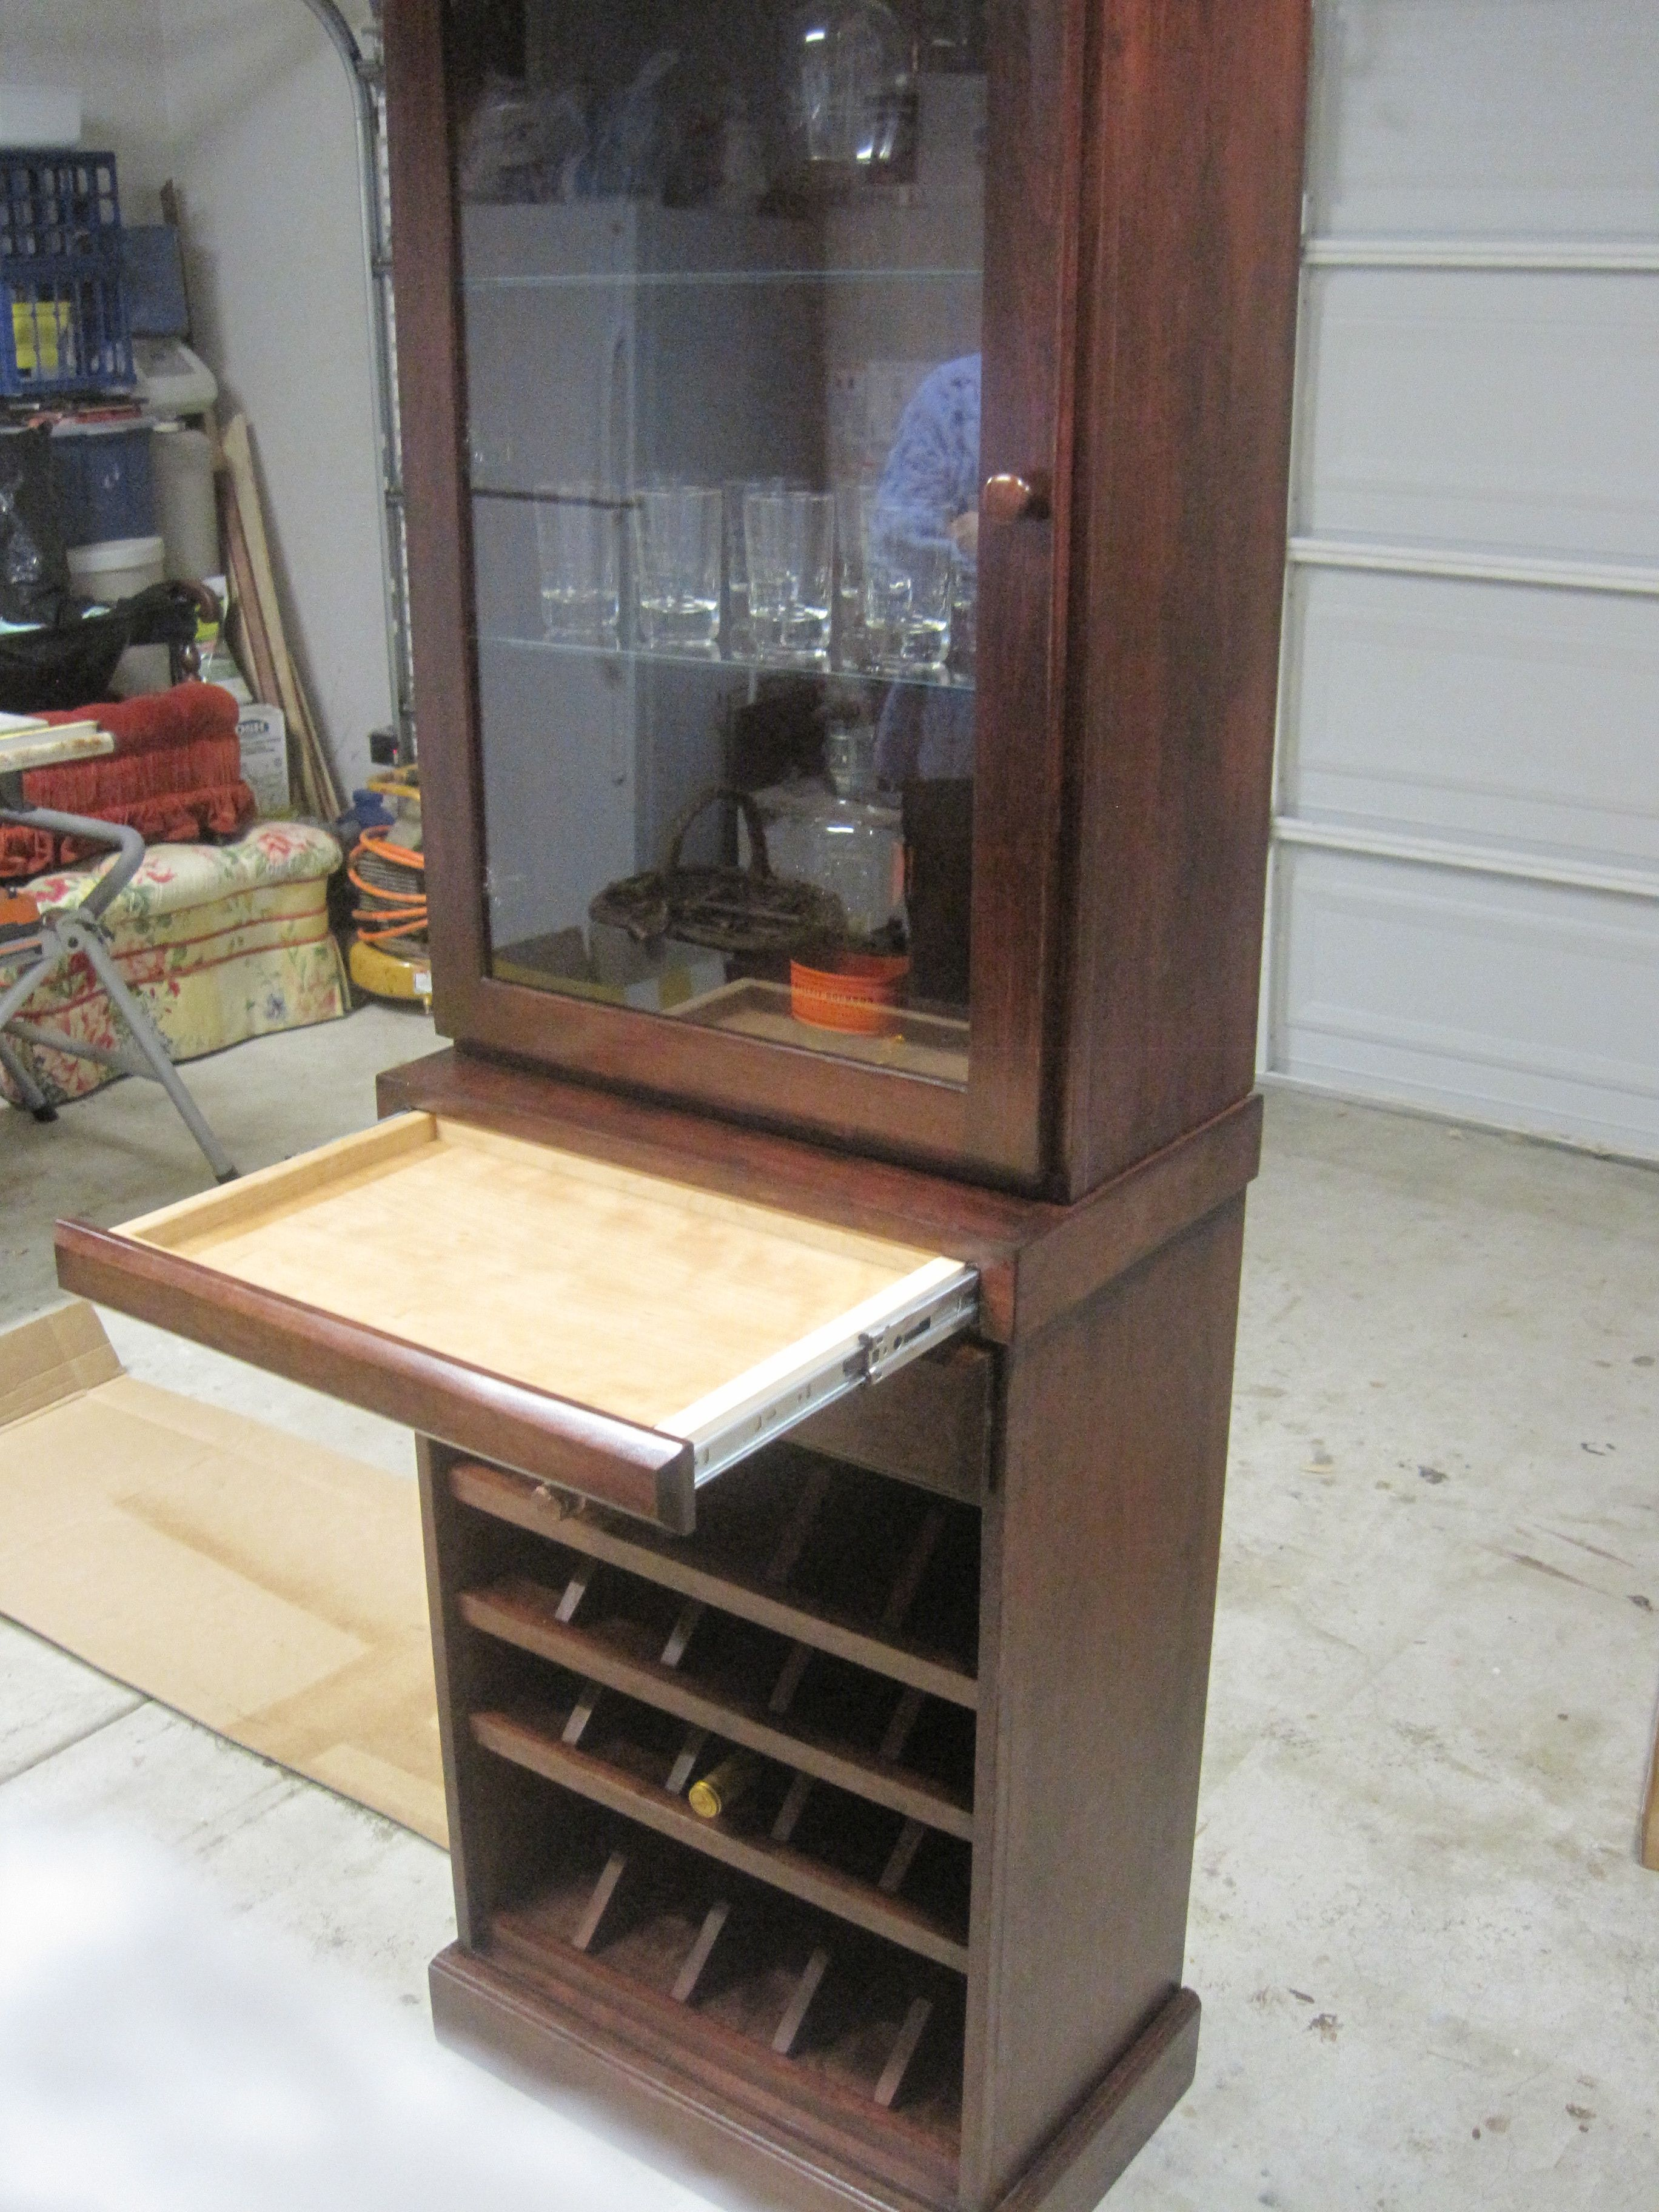 Liquor Cabinet Furniture, Locking Liquor Cabinet, Family Trees, Myrtle,  Apartment Ideas, Cabinets, Closets, Fitted Wardrobes, Kitchen Cabinets